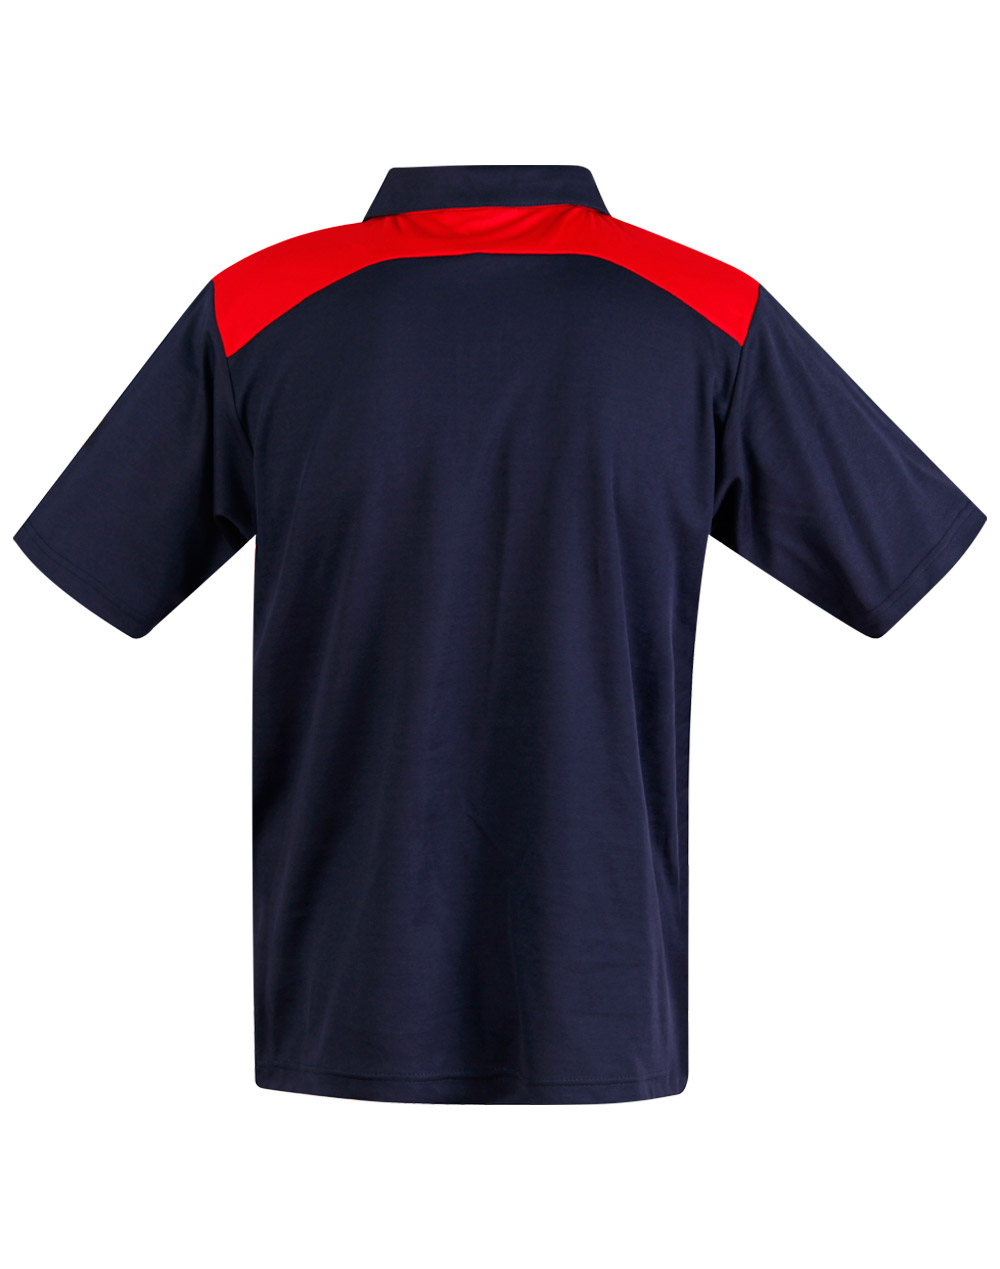 https://s3-ap-southeast-1.amazonaws.com/ws-imgs/POLOSHIRTS/PS31_NavyRed_Back.jpg